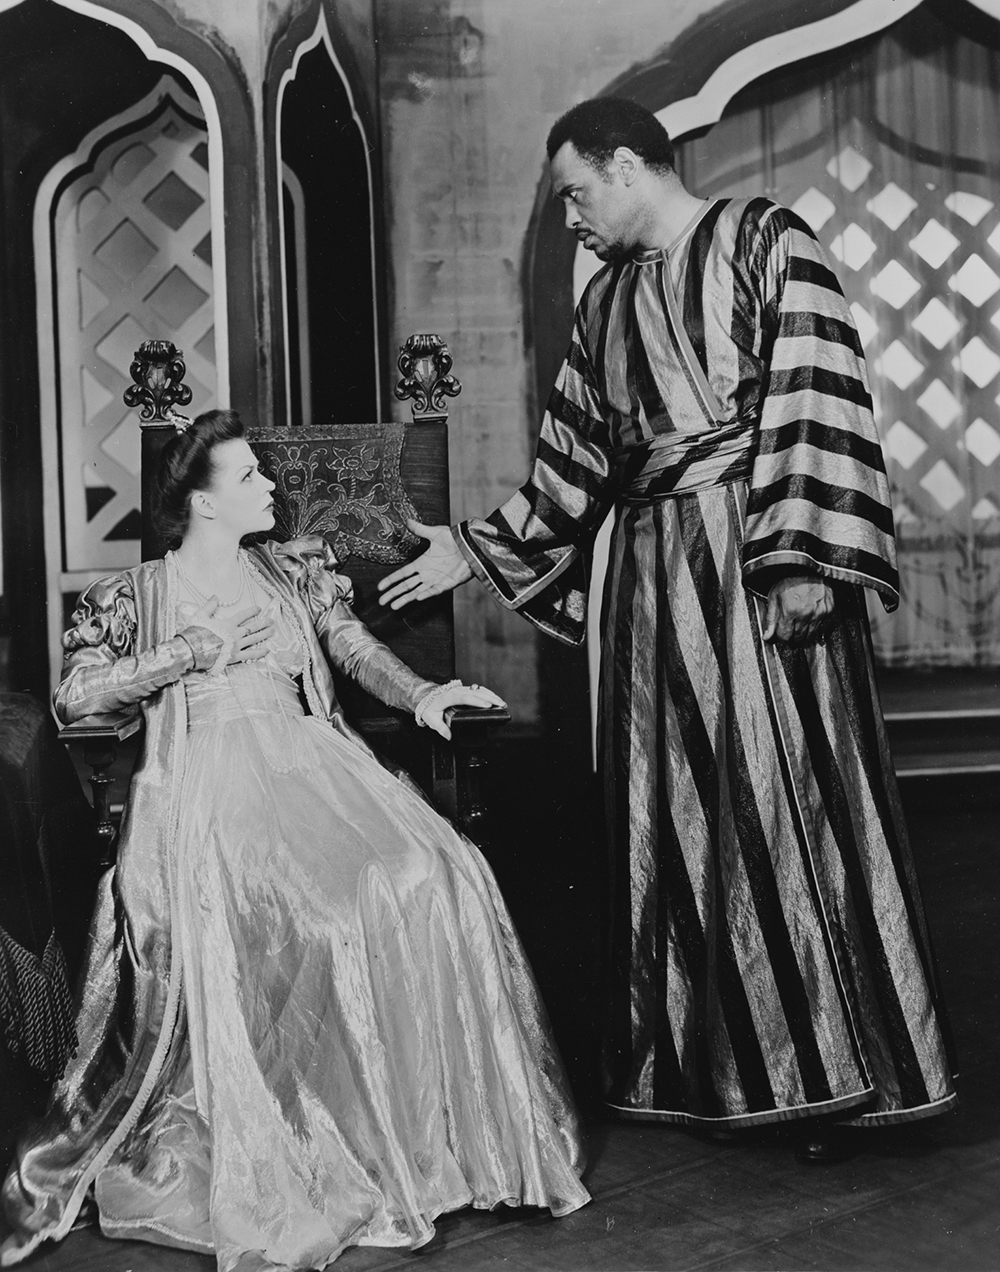 A black and white photograph of a woman sat in a chair, wearing an elaborate gown, with a man reaching out his hand next to her.